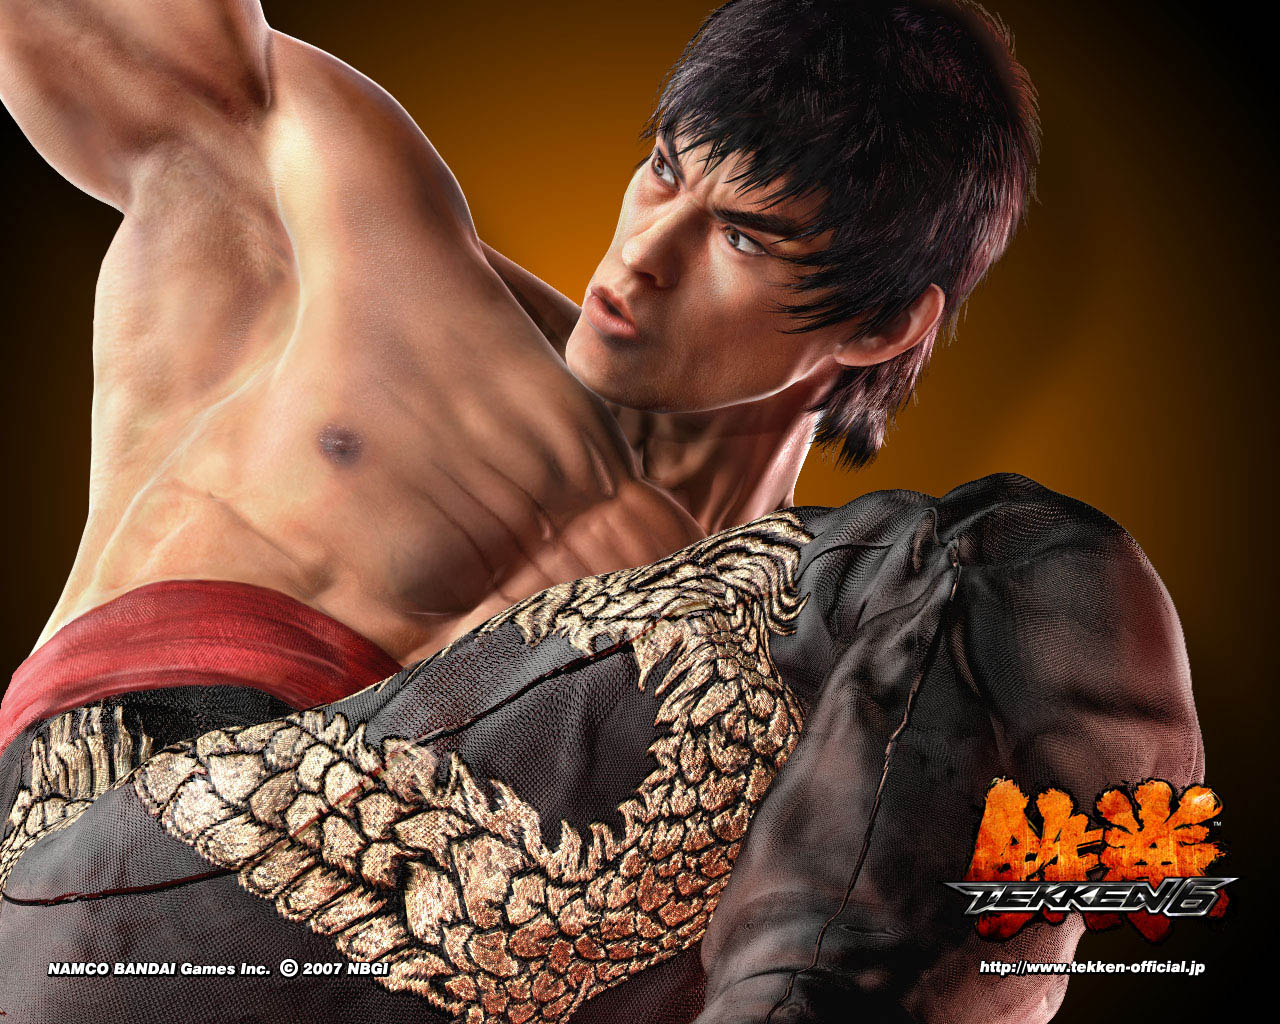 Previous Tekken 6 Wallpaper Marshall Law